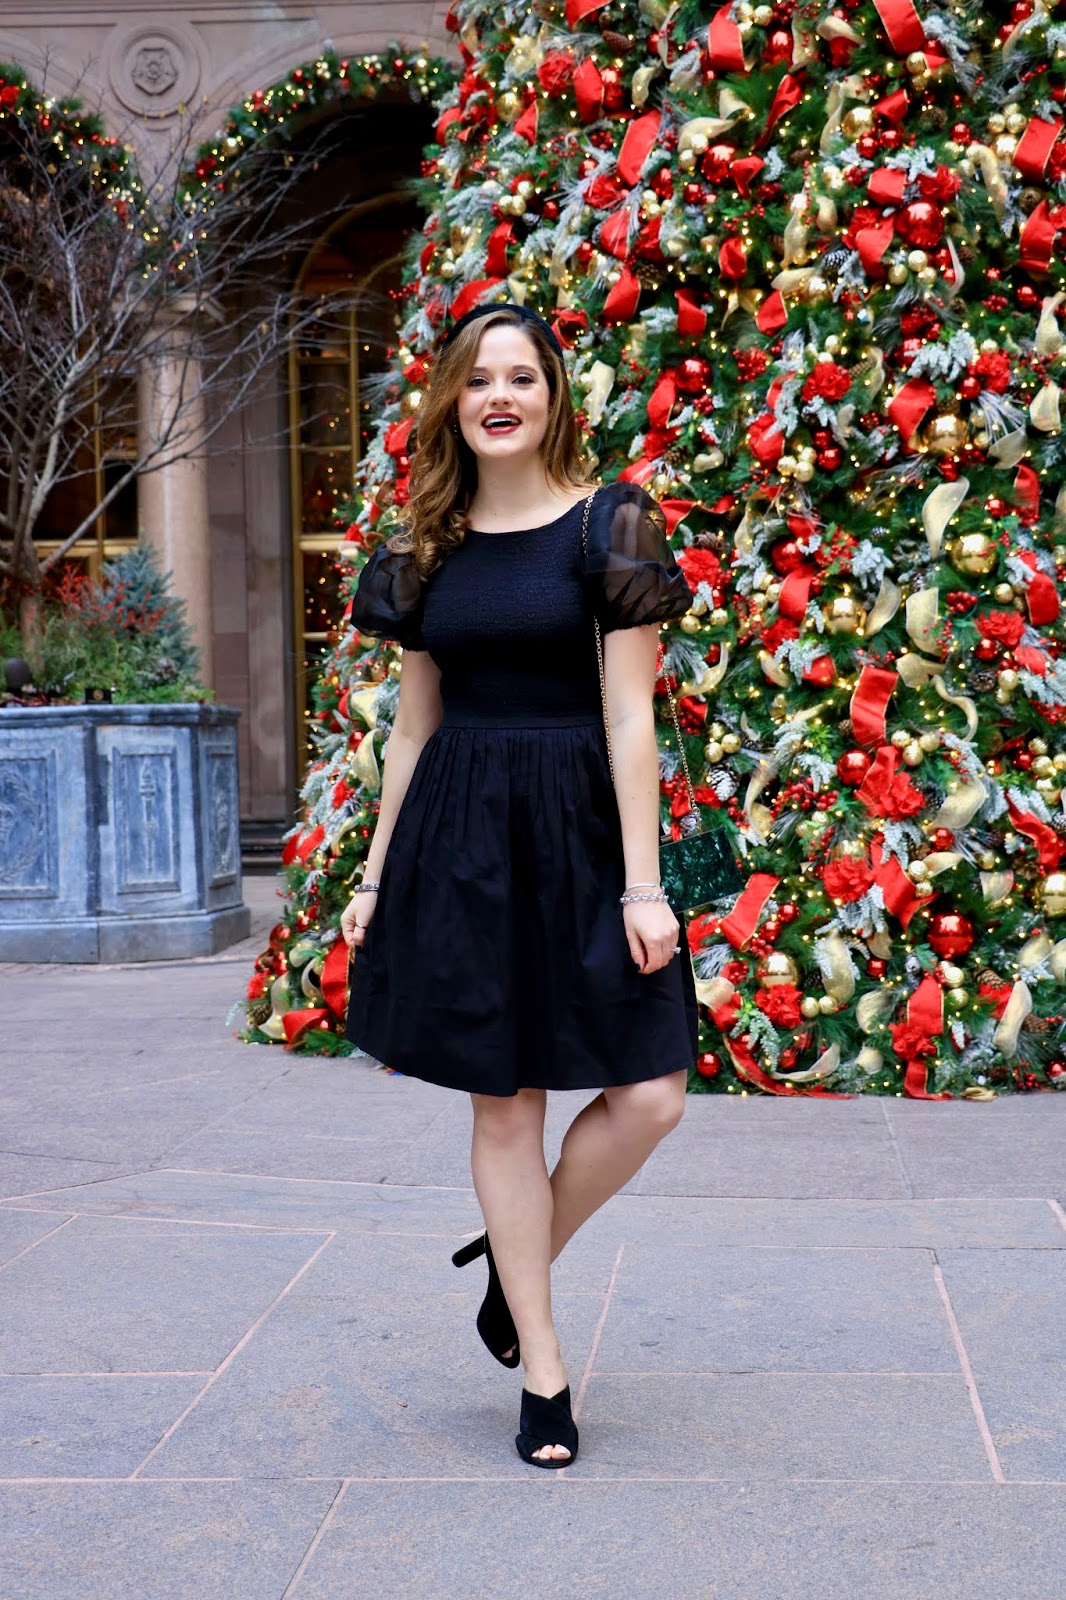 Nyc fashion blogger Kathleen Harper wearing an Officially Quigley dress from Amazon's The Drop collection.